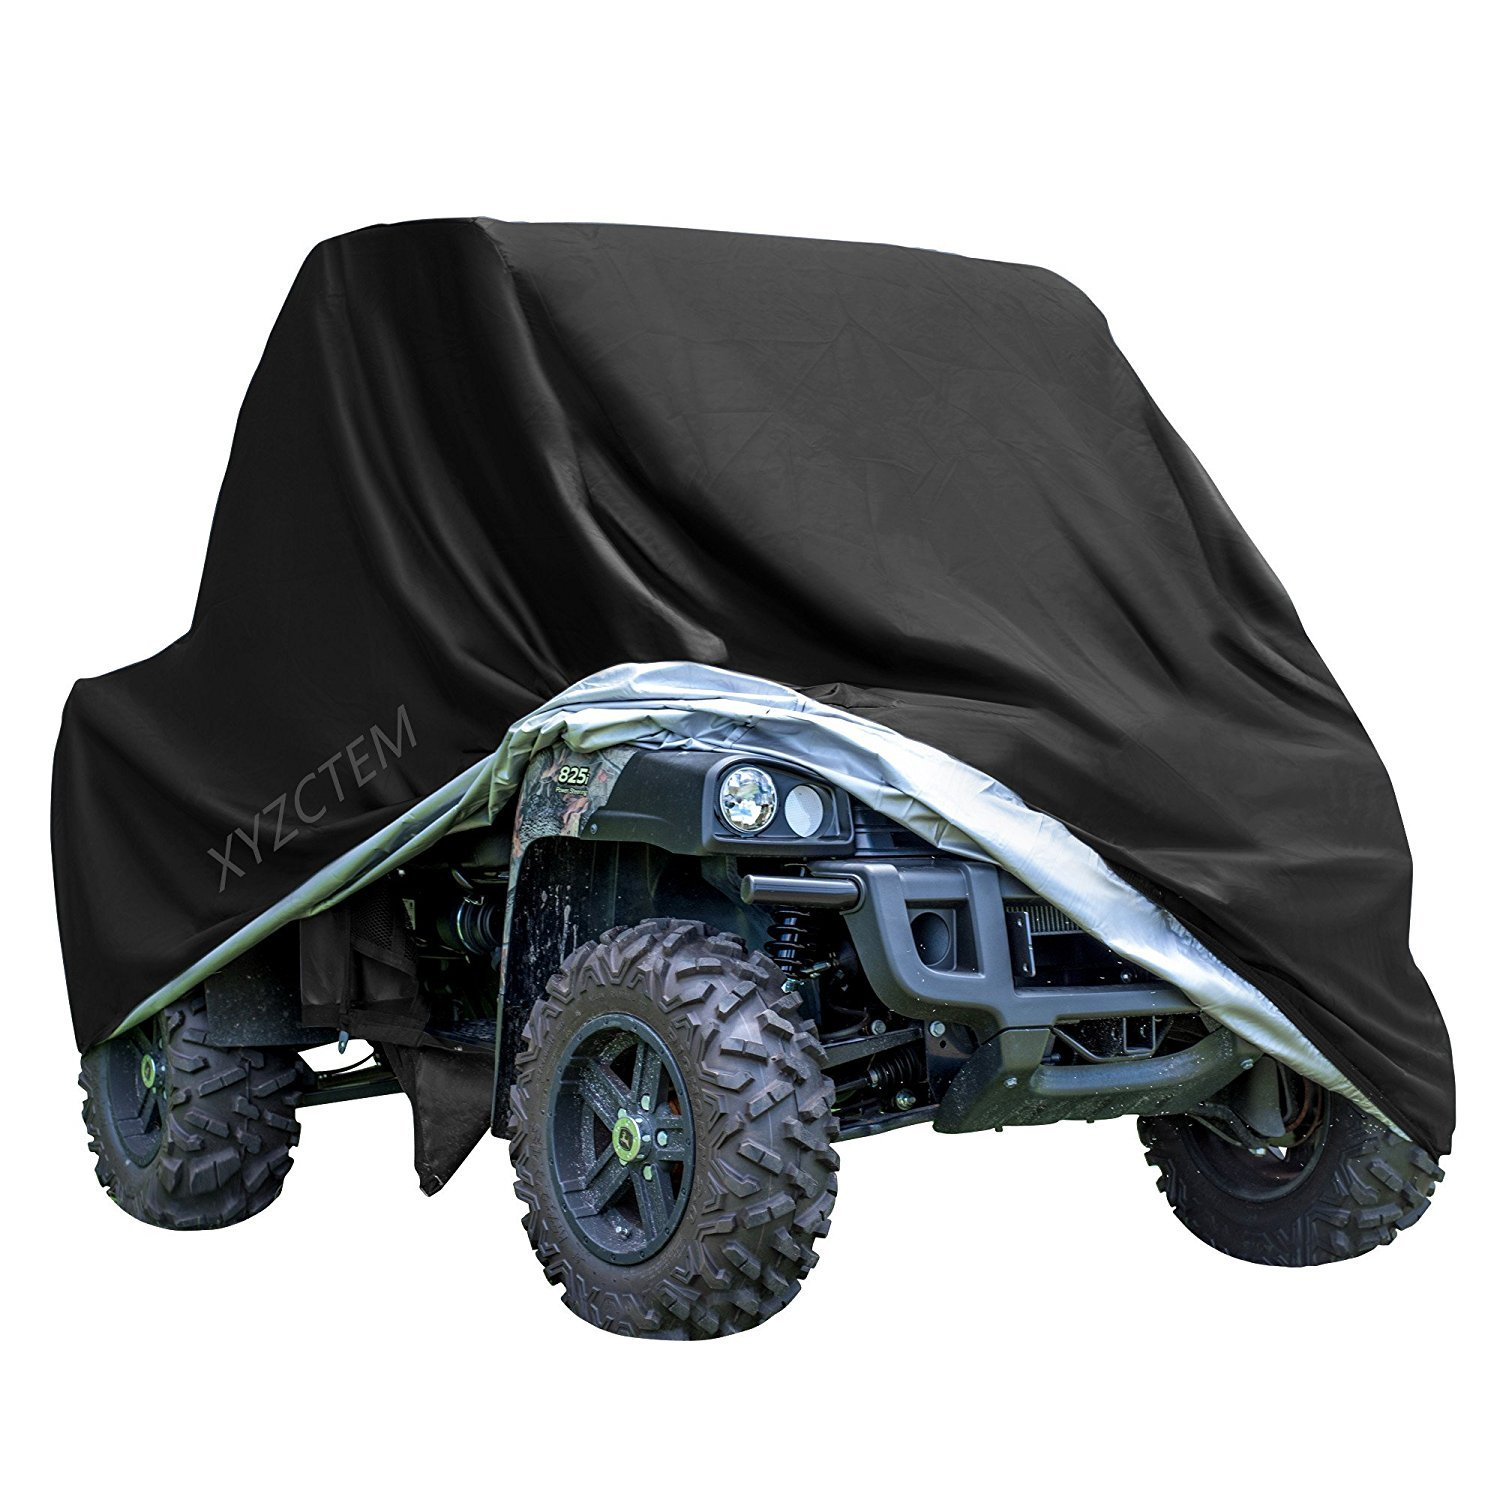 XYZCTEM UTV Cover with Heavy Duty Black Oxford Waterproof Material, 158.10'' x 62.06'' x 75.20'' (402 158 191cm) Included Storage Bag. Protects UTV From Rain, Hail, Dust, Snow, Sleet, and Sun (XXXL) by XYZCTEM